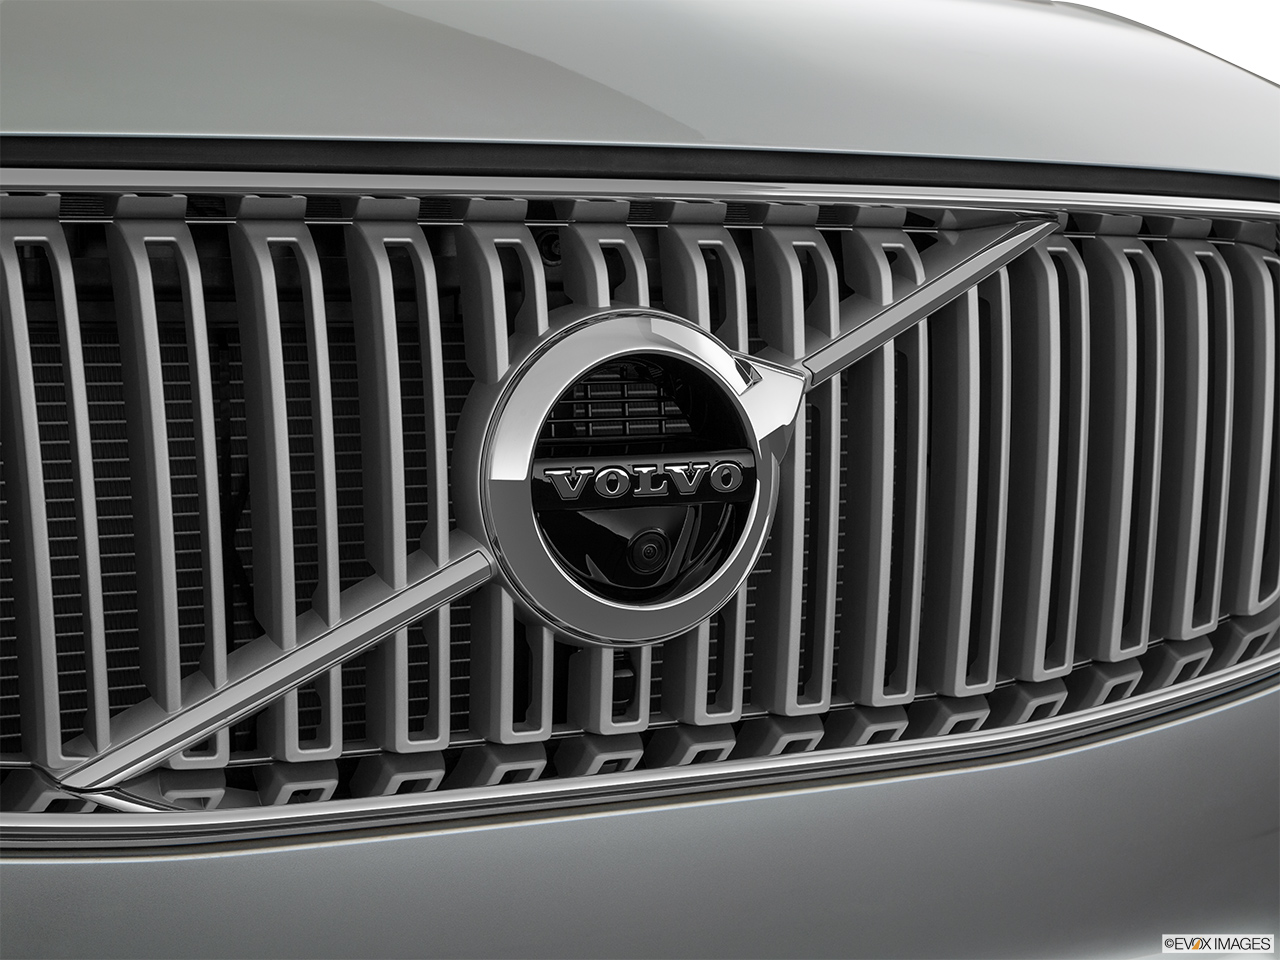 2019 Volvo XC90  T6 Inscription Rear manufacture badge/emblem